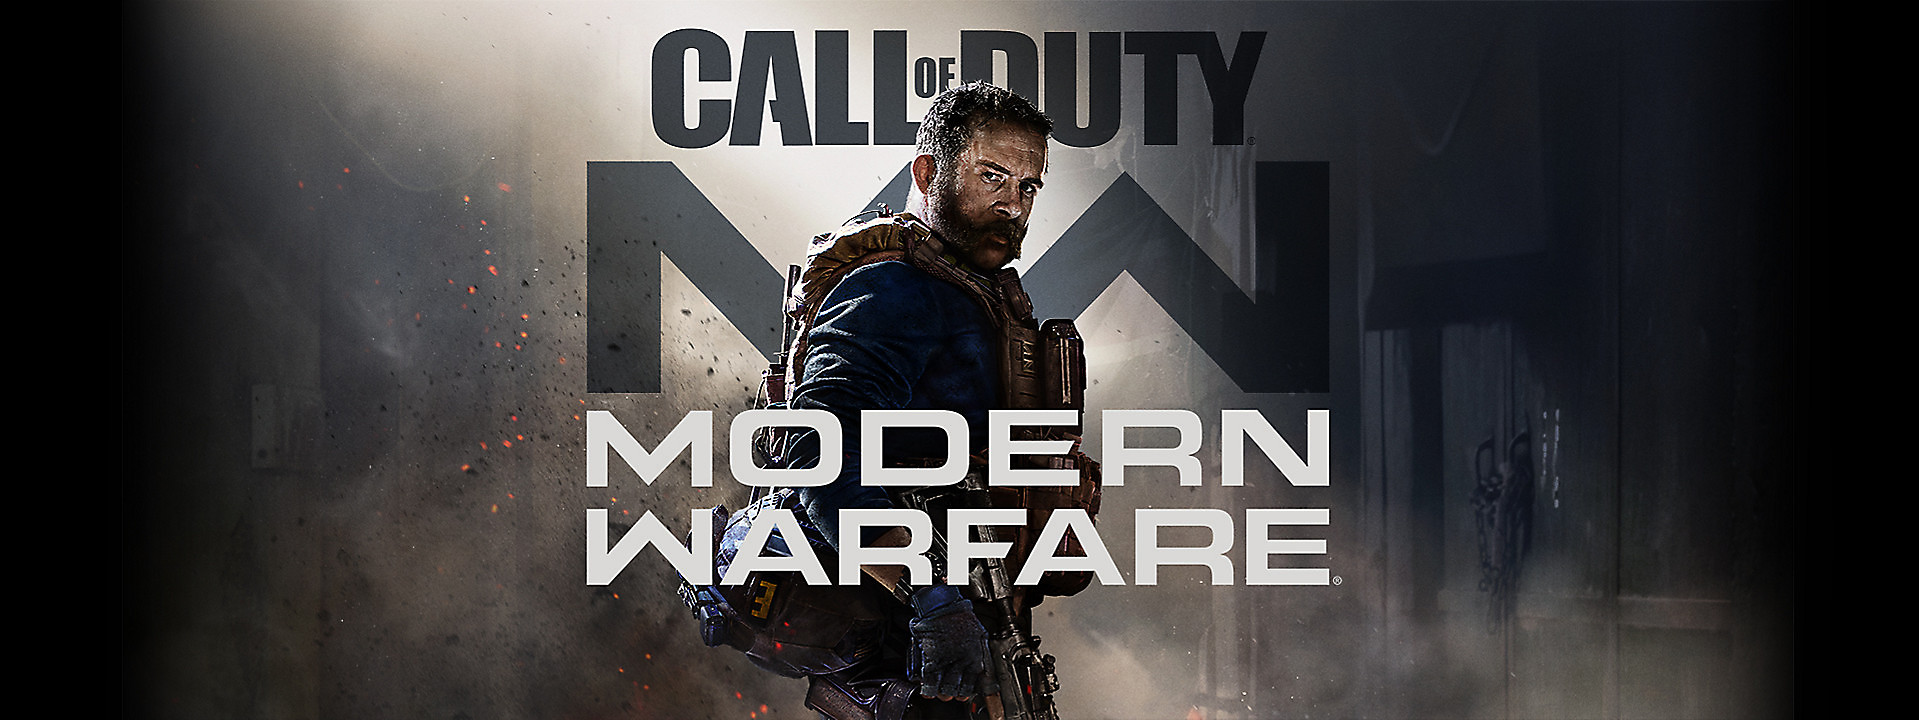 Last Game You Finished And Your Four-ghts - Page 5 Call-of-duty-modern-warfare-hero-banner-03-ps4-us-30may19?$native_nt$